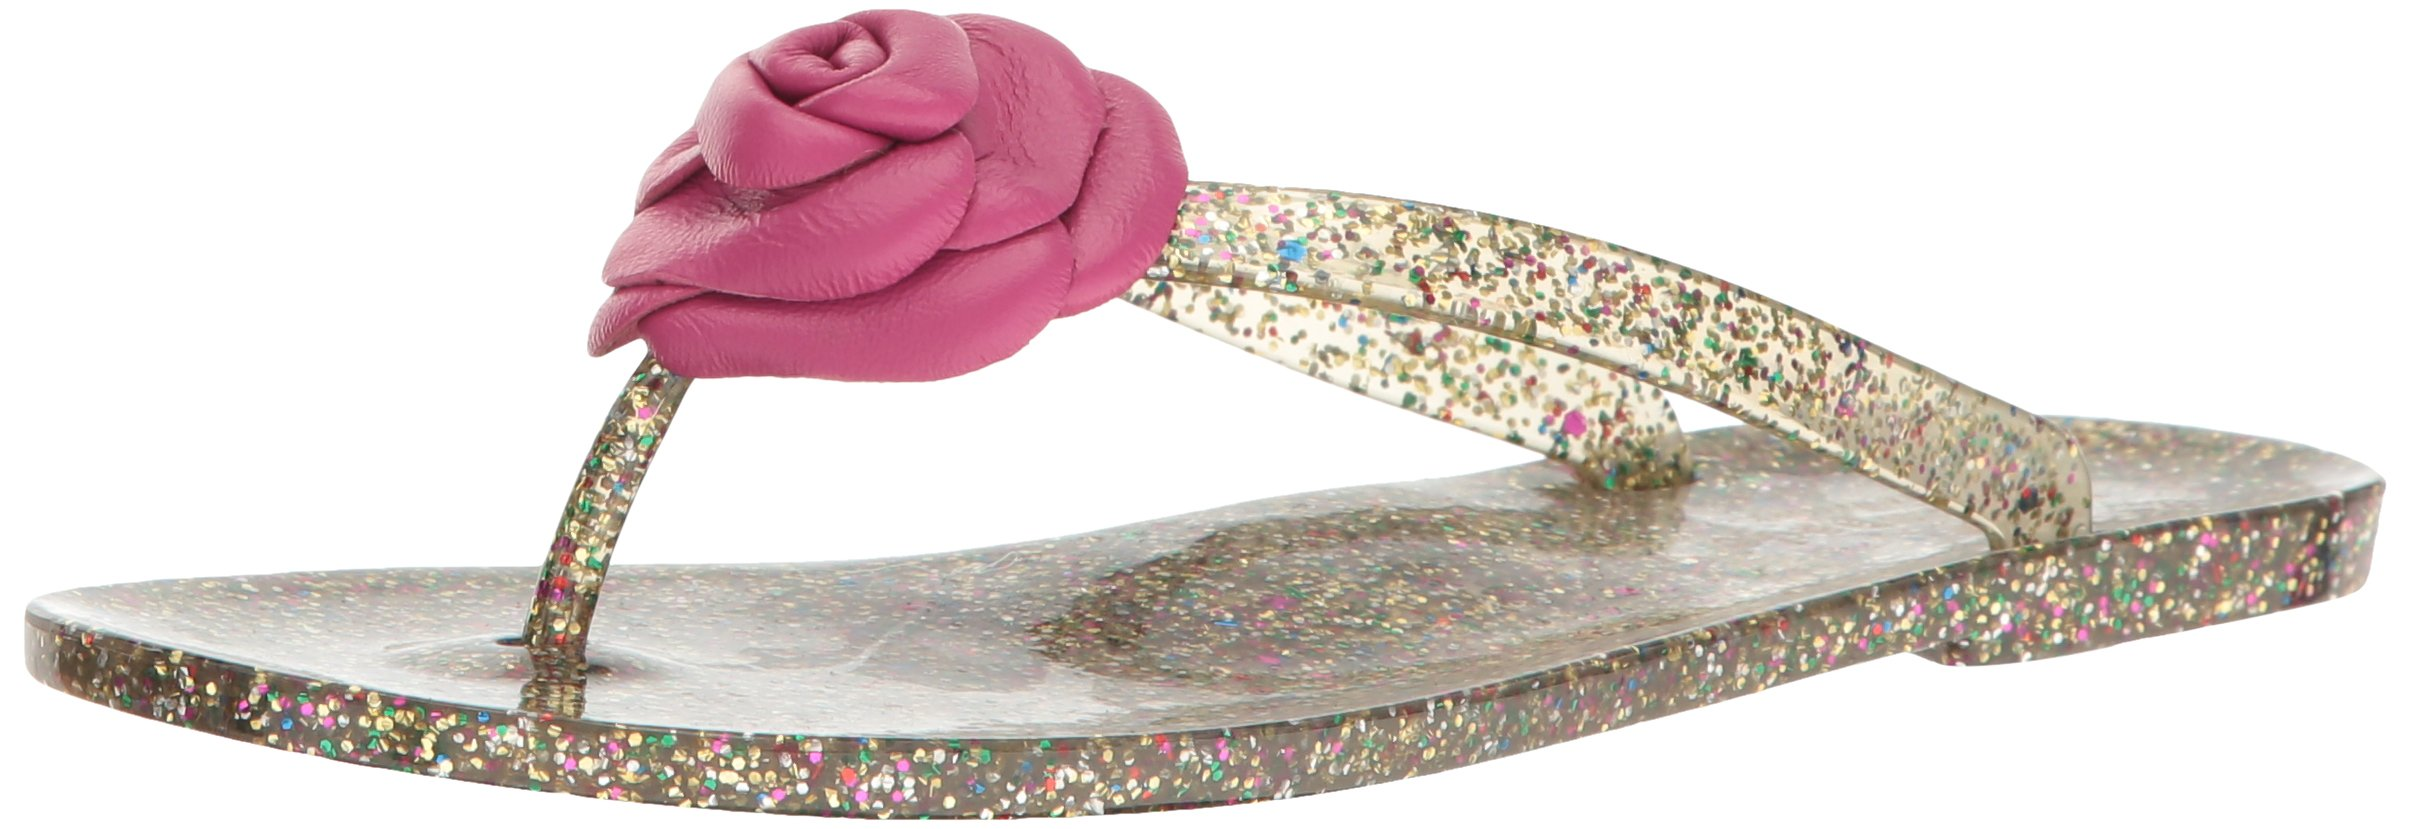 Kate Spade New York Women's Fayette Slide Sandal, Multi Glitter, 8 M US